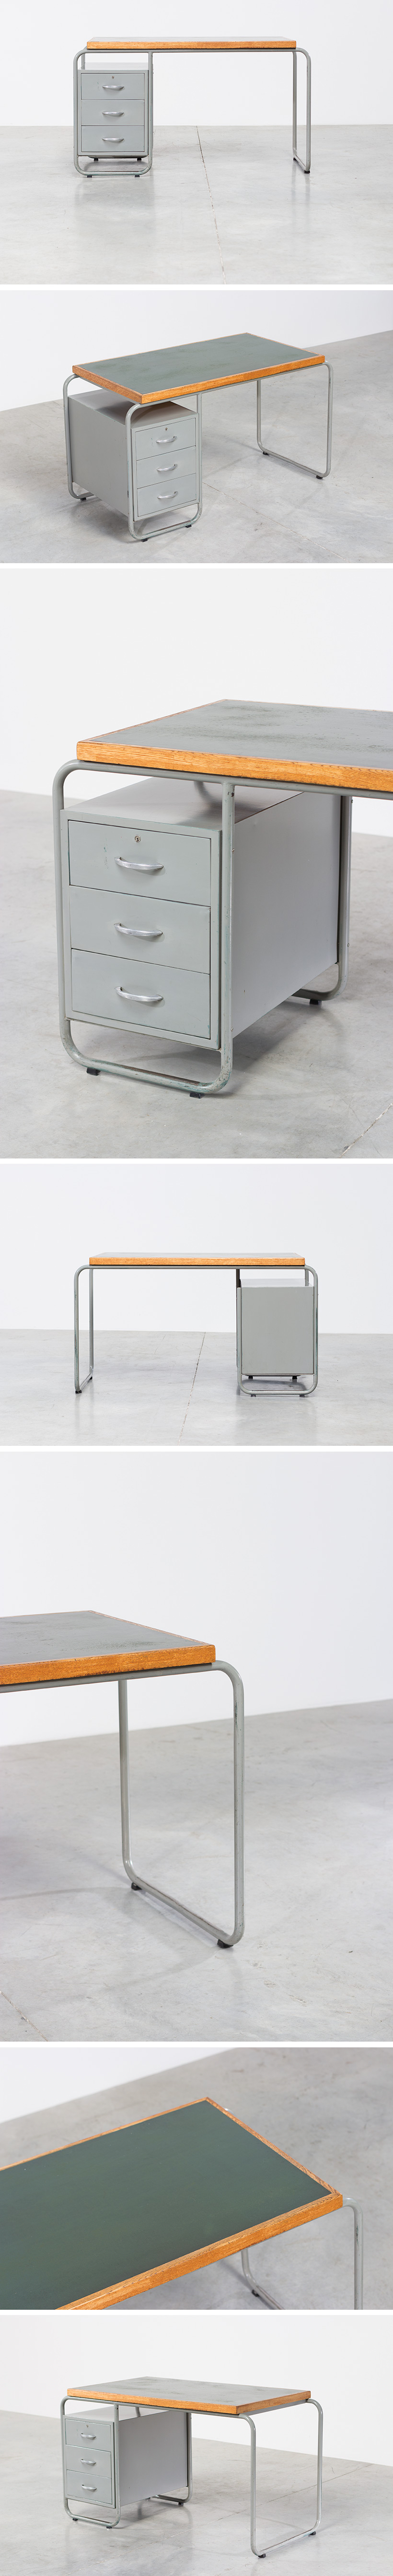 Bauhaus industrial tubular steel and linoleum desk Large